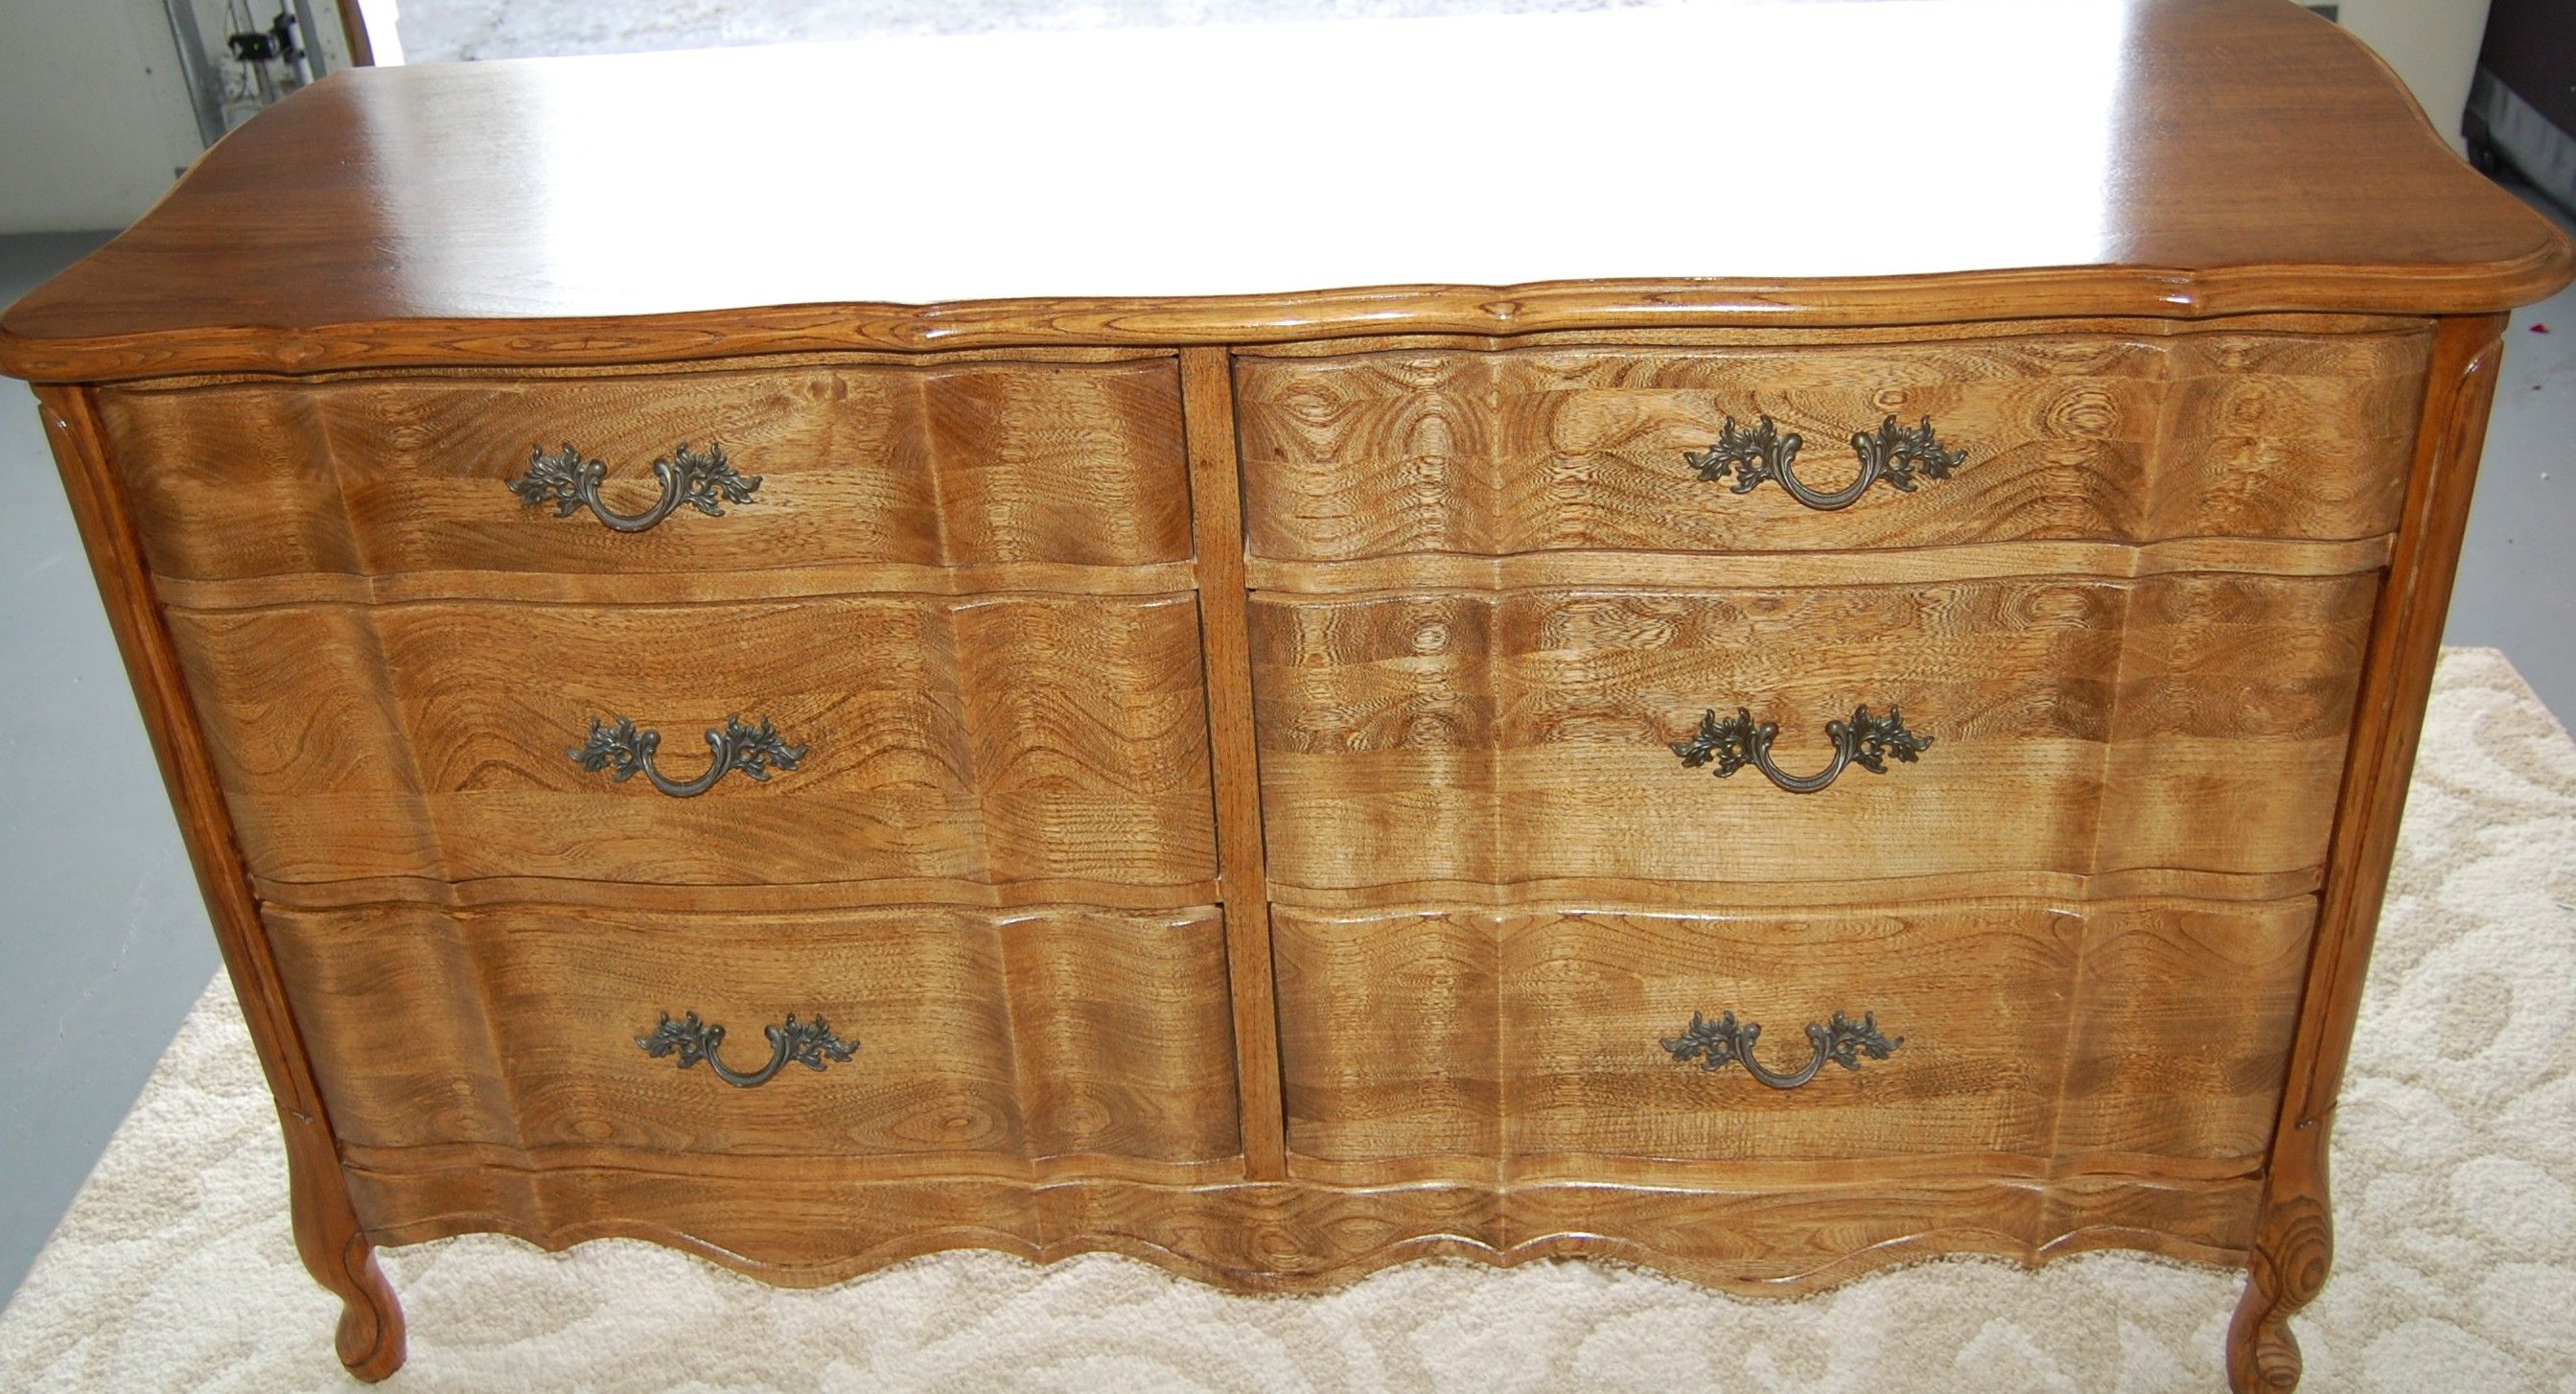 Restored 1960's French Provincial Dresser for a couple in